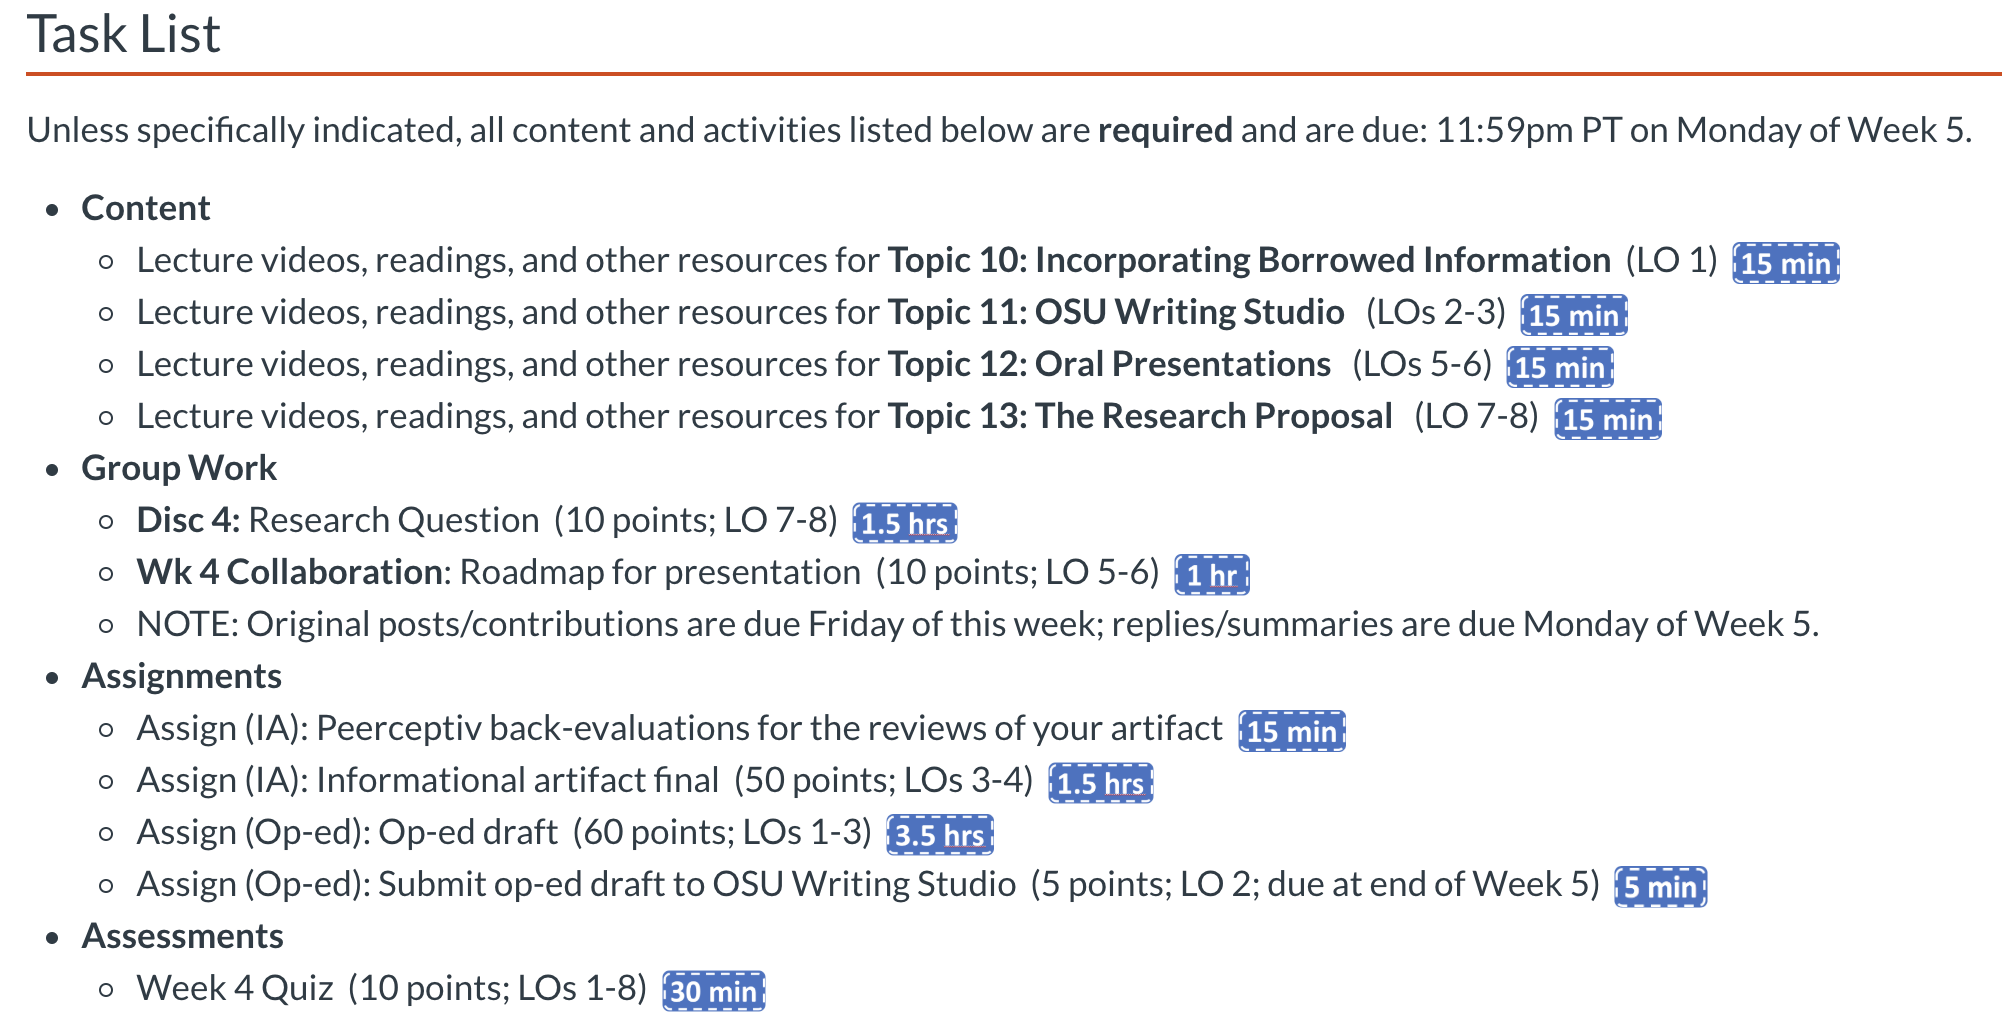 Task list for students with the estimated time to complete each item